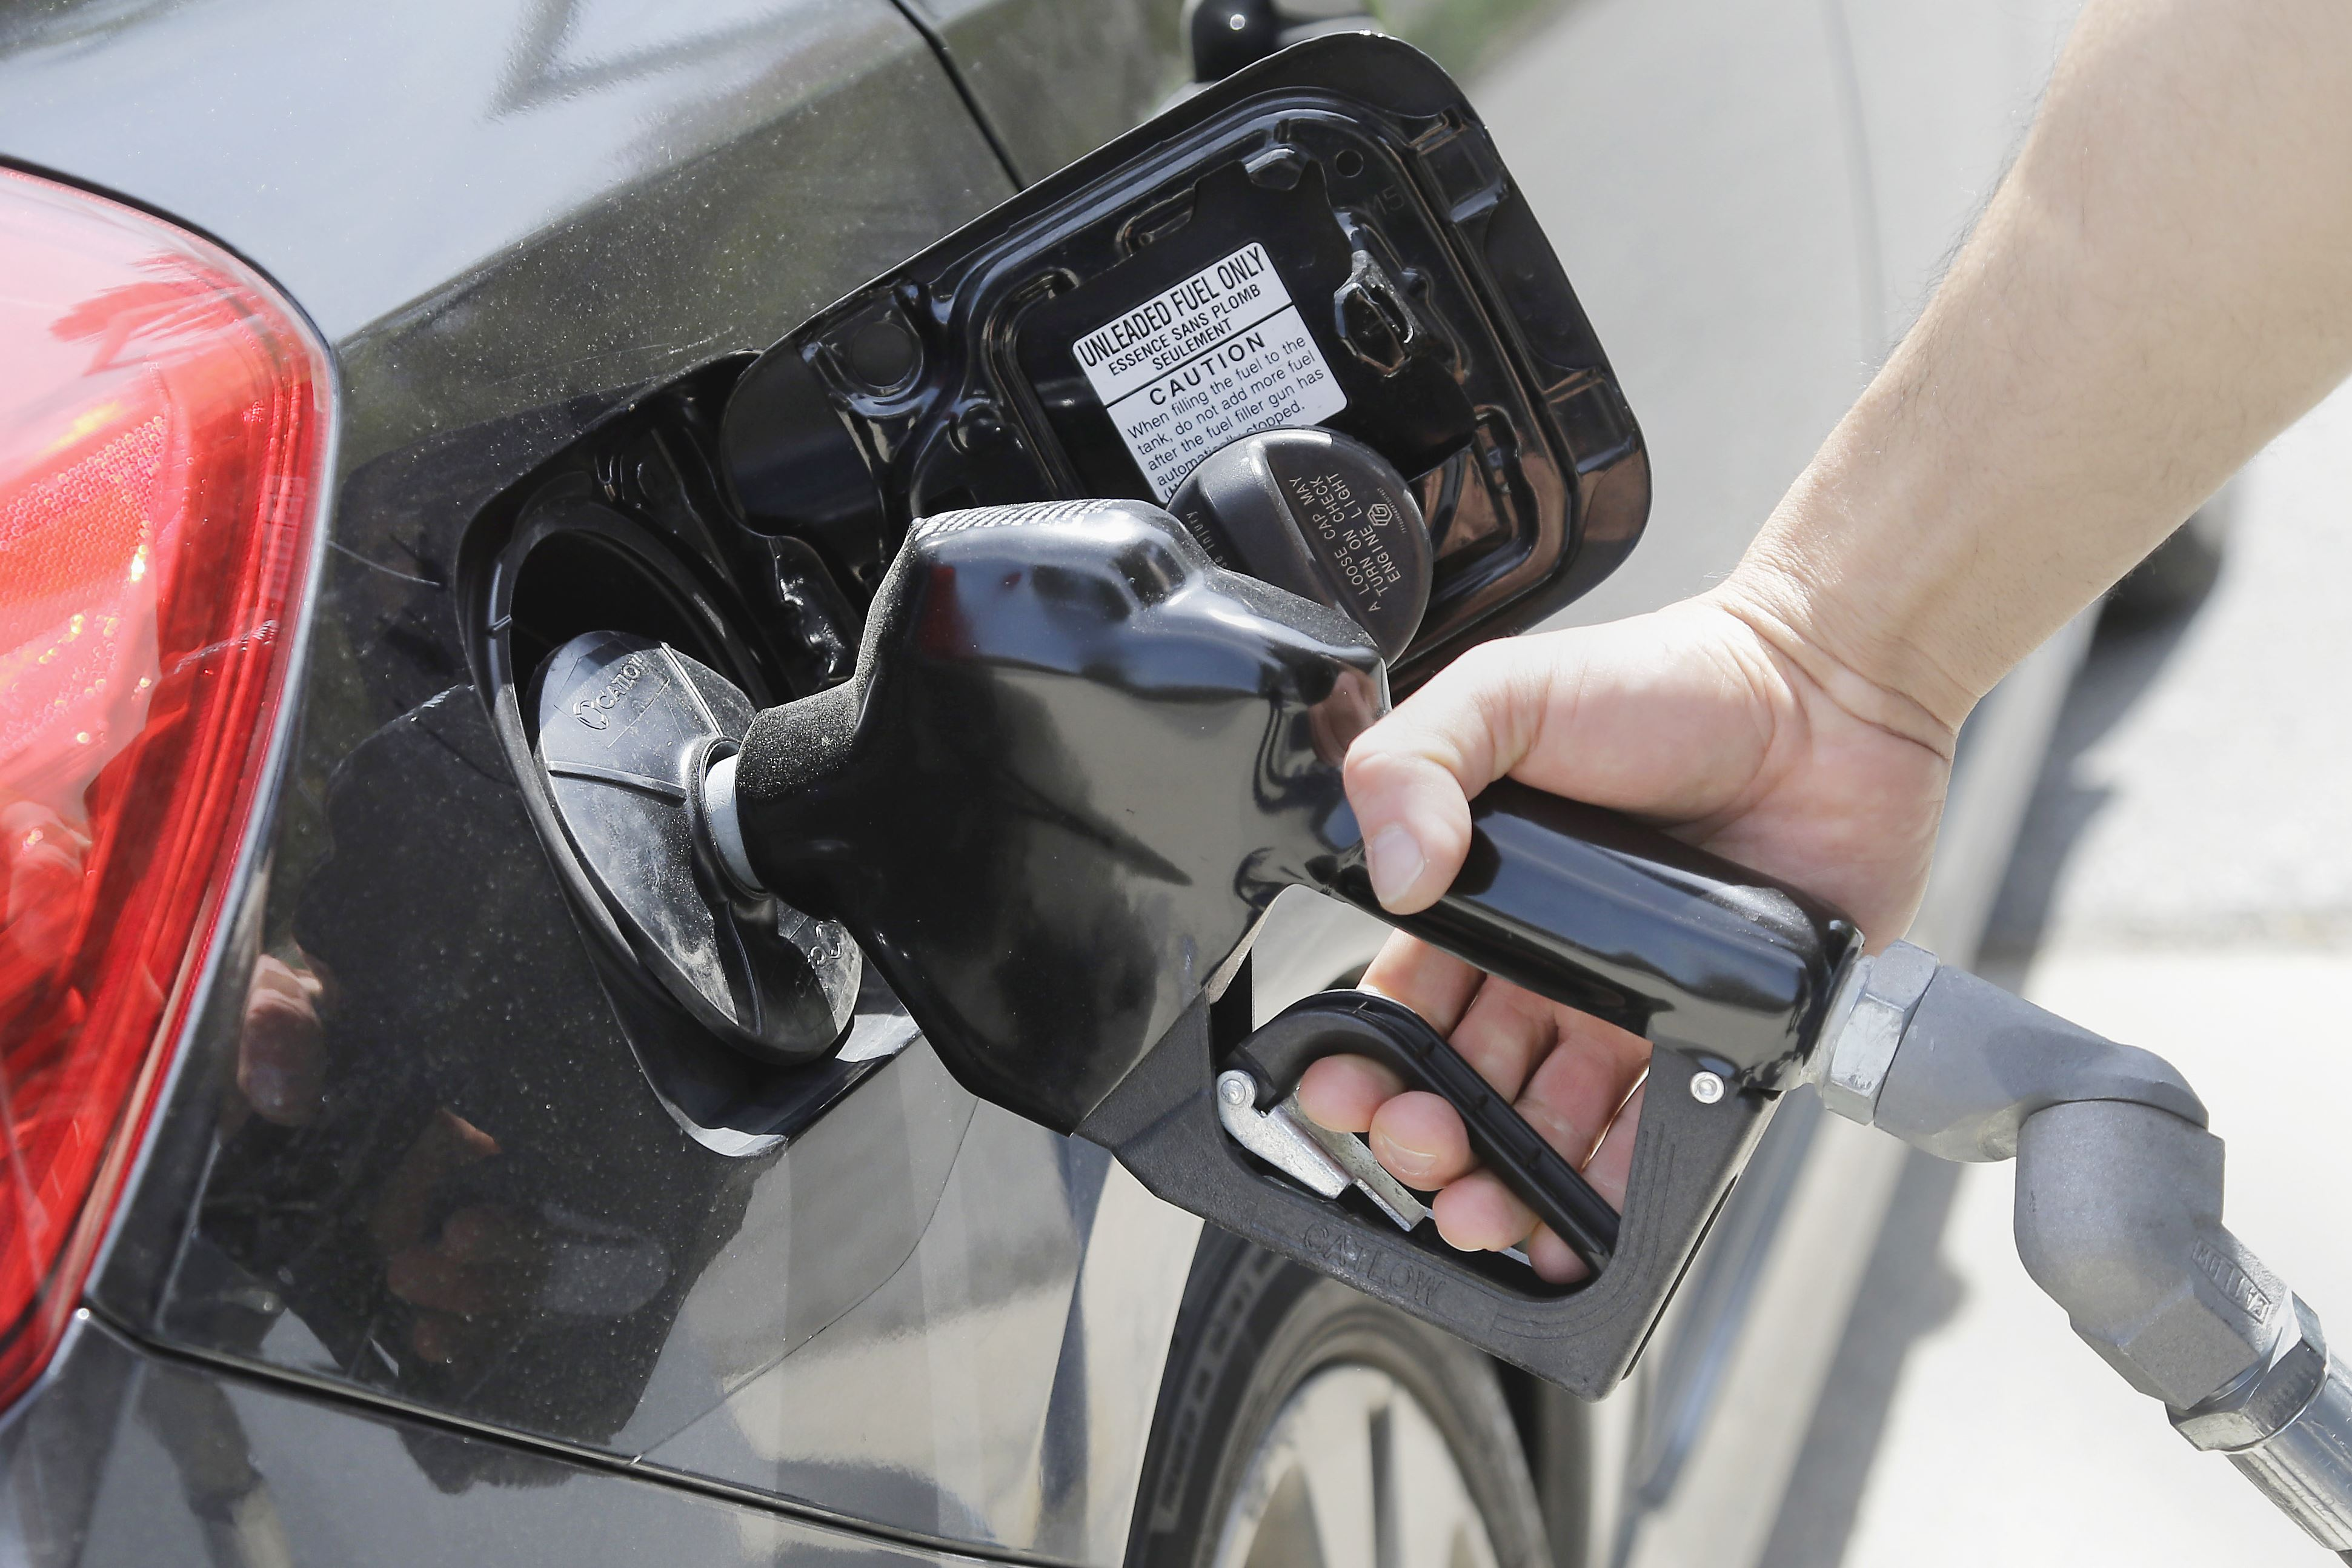 Two Dollar Gasoline Gasoline prices in the Pittsburgh area are down slightly since last month, which bucks the trend of rising prices this time of year.